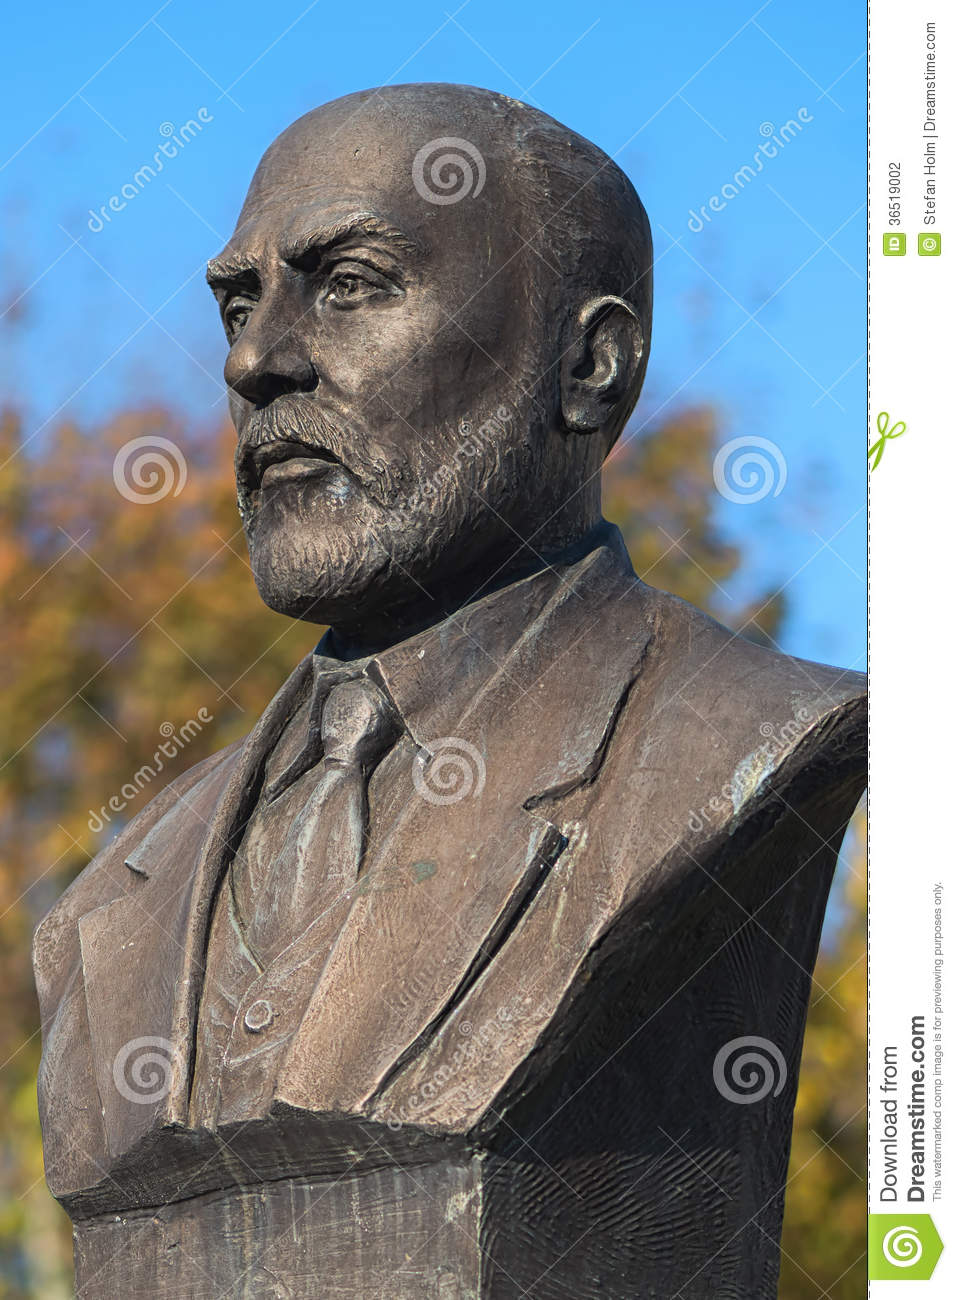 ISTANBUL - NOV, 23: A bronze bust or statue of Mehmet Akif Ersoy writer of the Turkish National Anthem